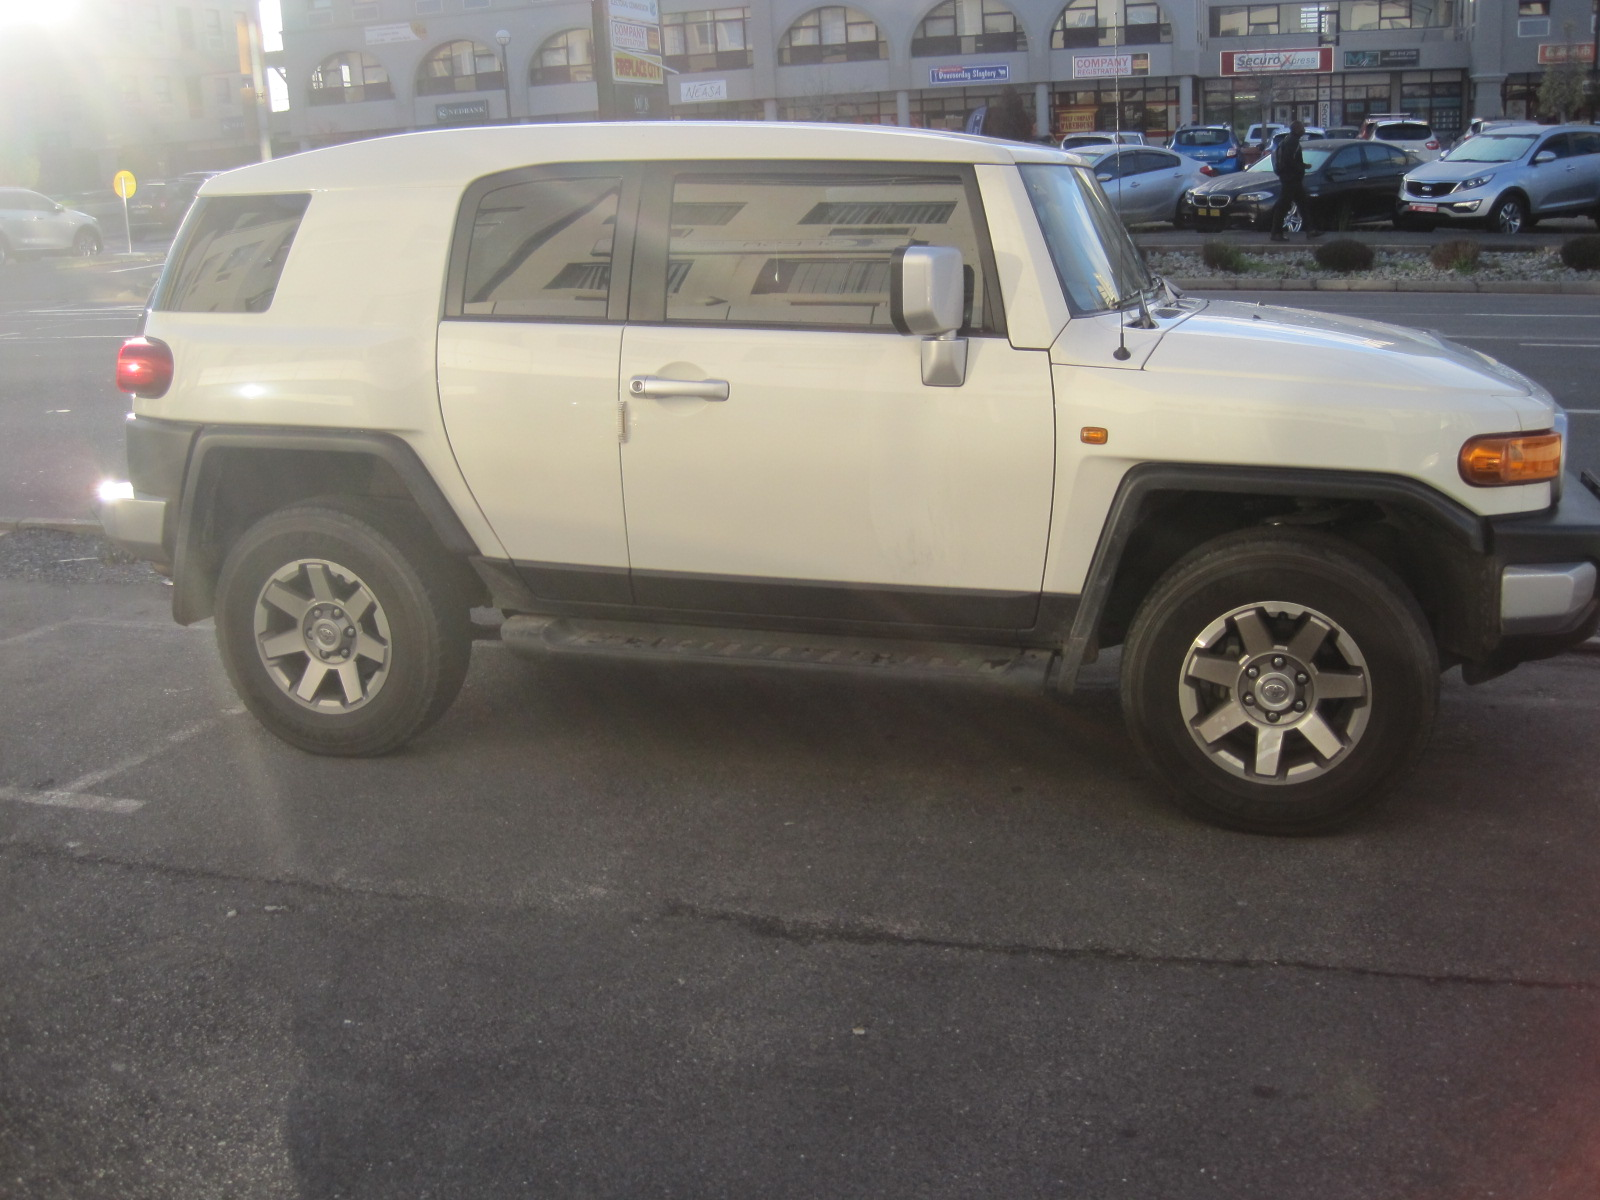 bakkies for sale on gumtree search results gumtree cars and bakkies cape html autos gibson wiring harness used for sale